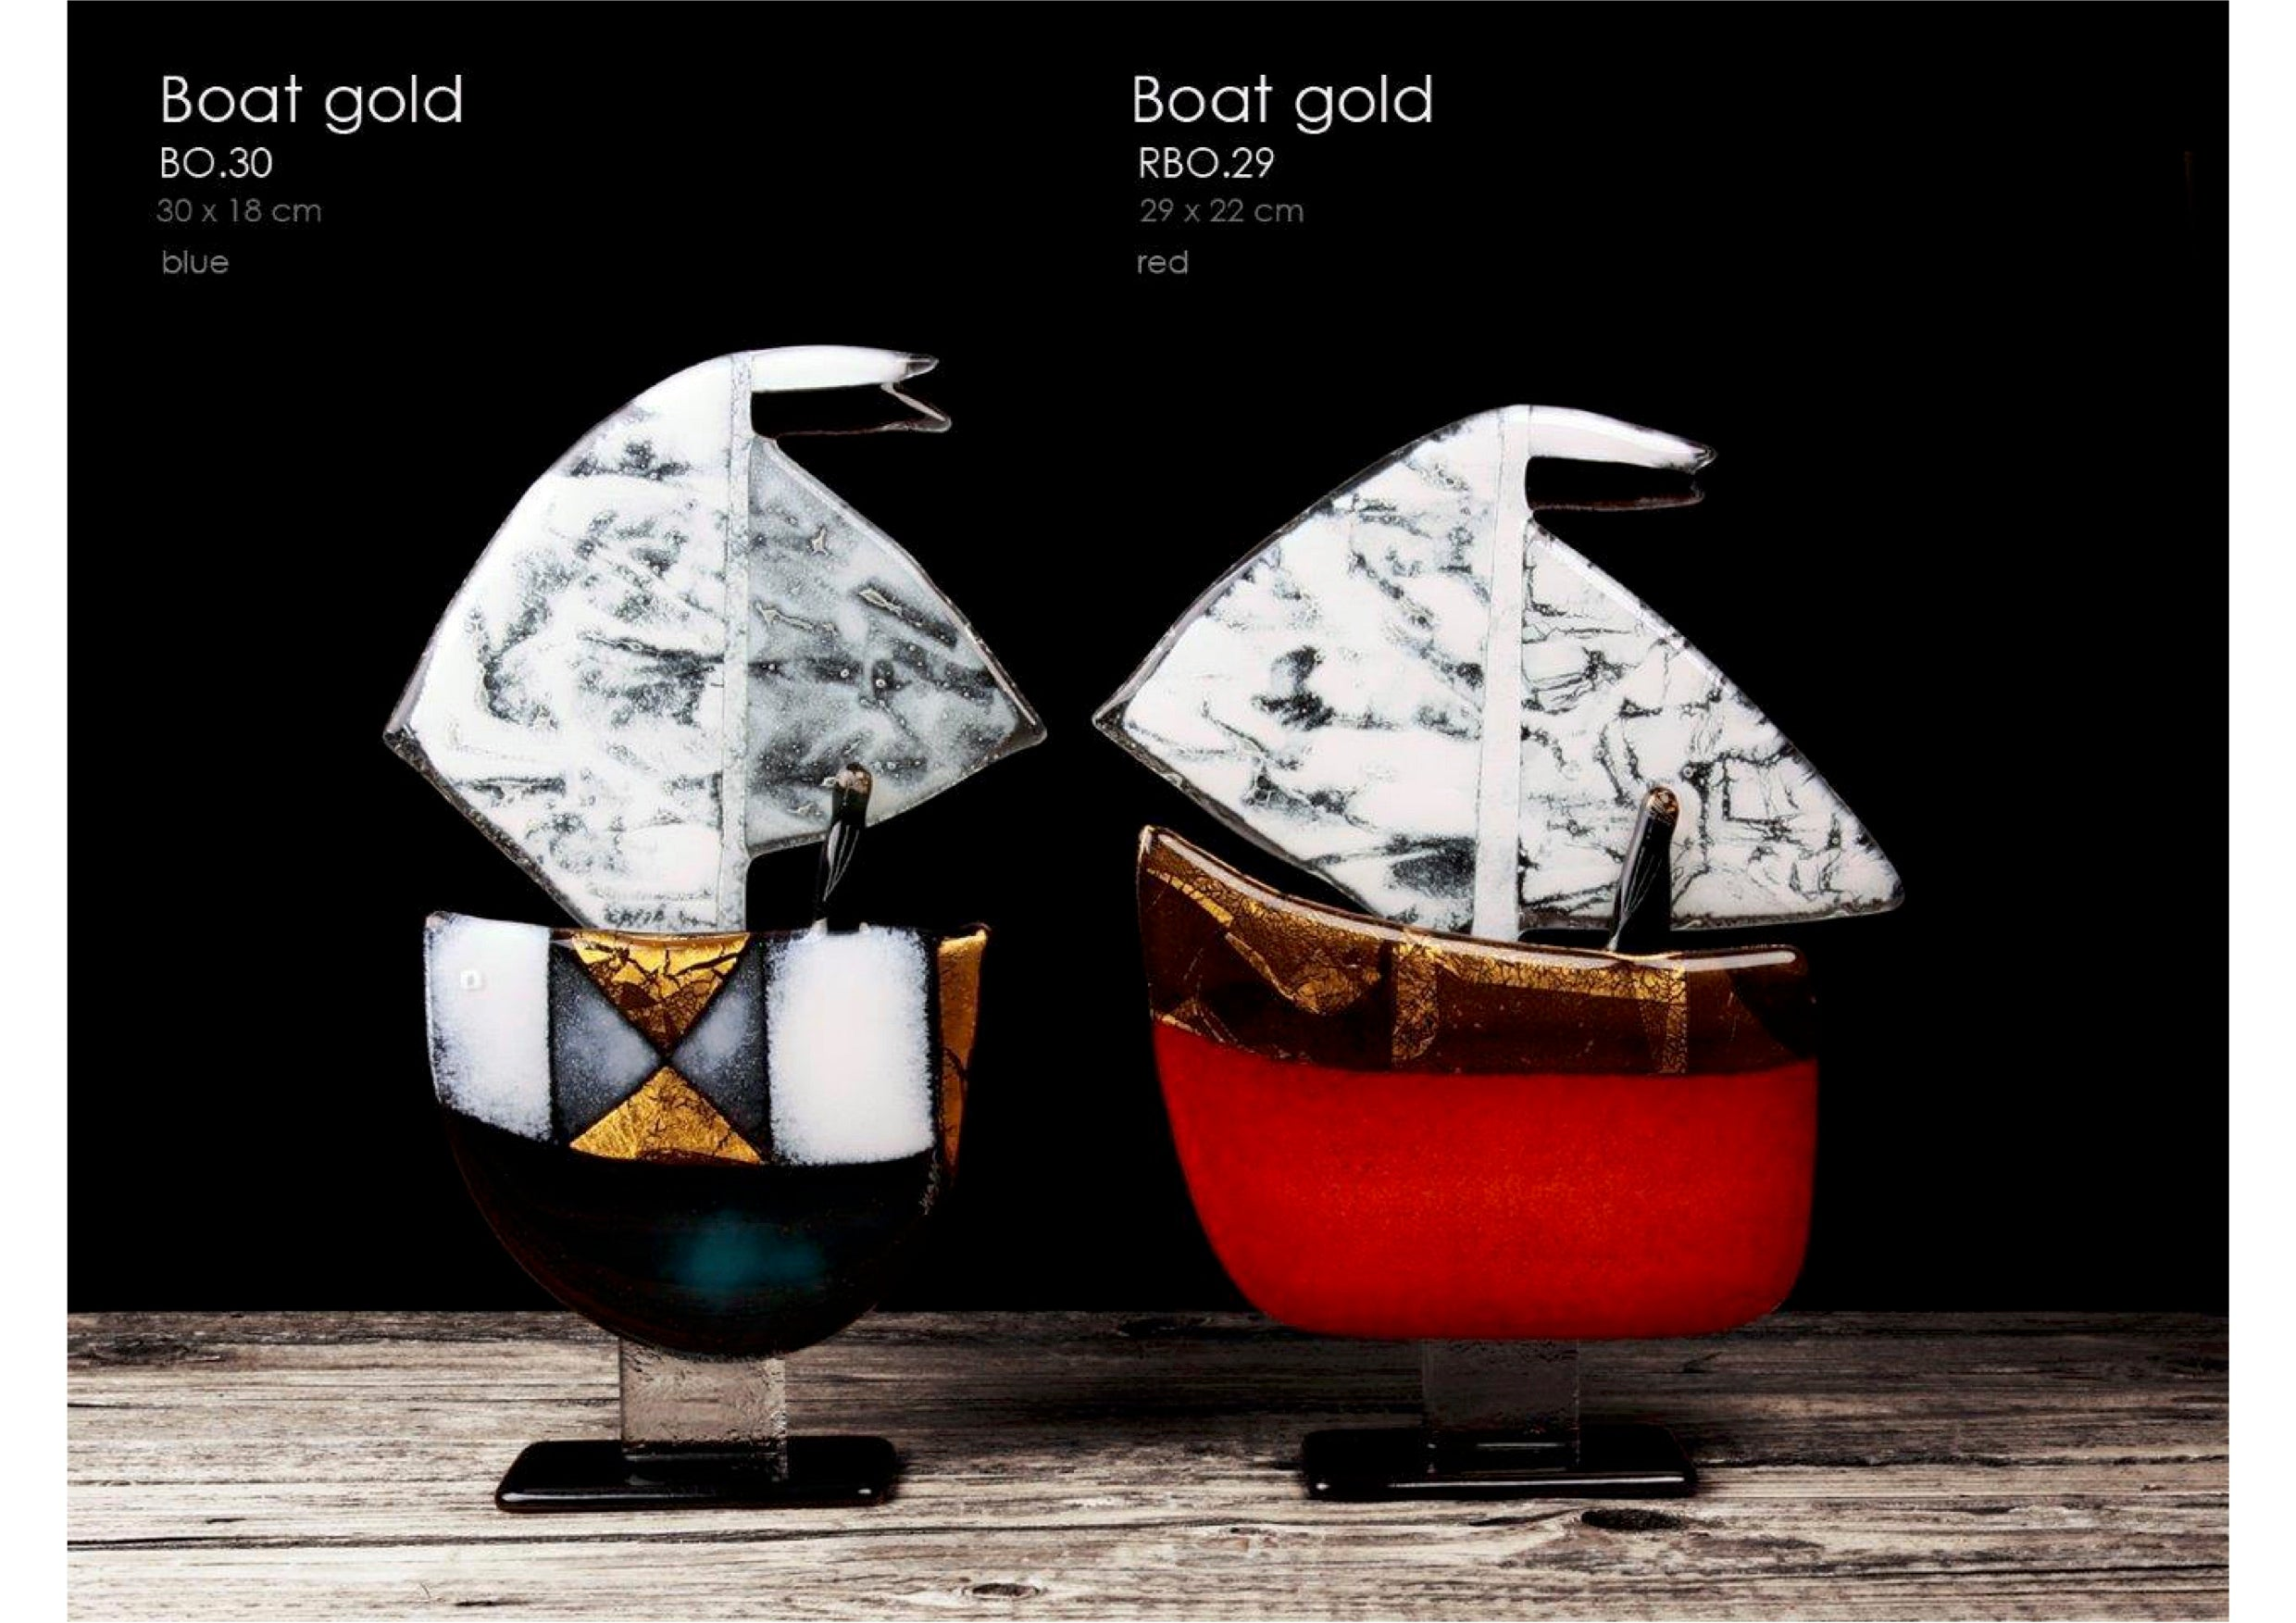 Boat Luxury Statue with 24 carat gold elements 30 cm high. Handcrafted Art made from fused glass.